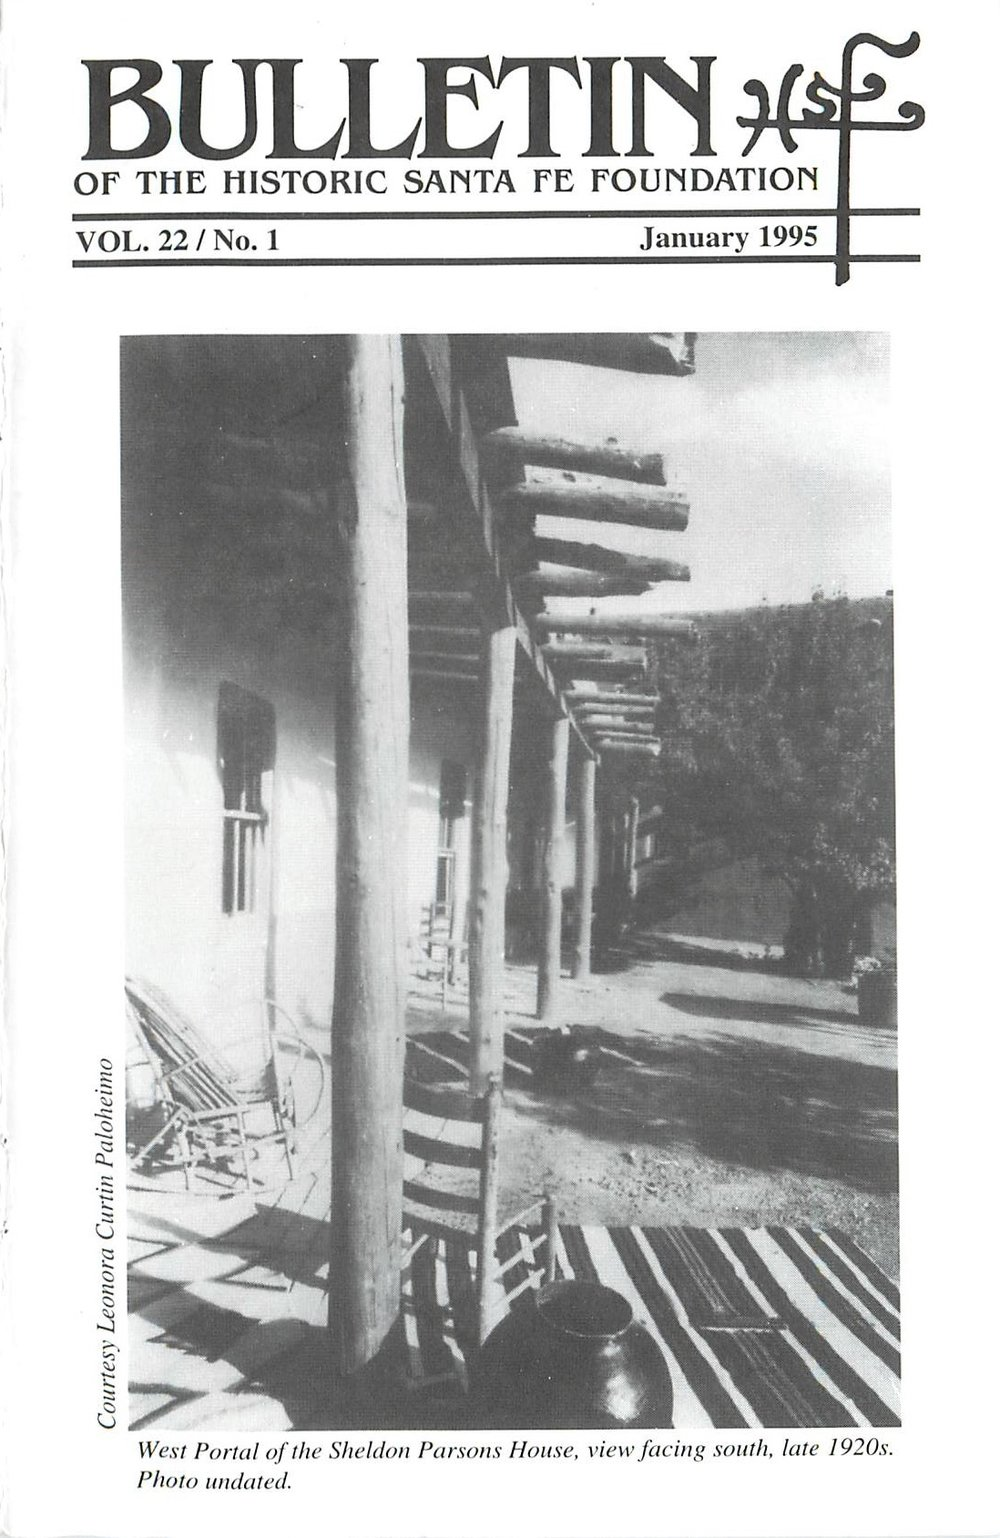 1995 HSFF Bulletin Vol.22 No.1 Cover